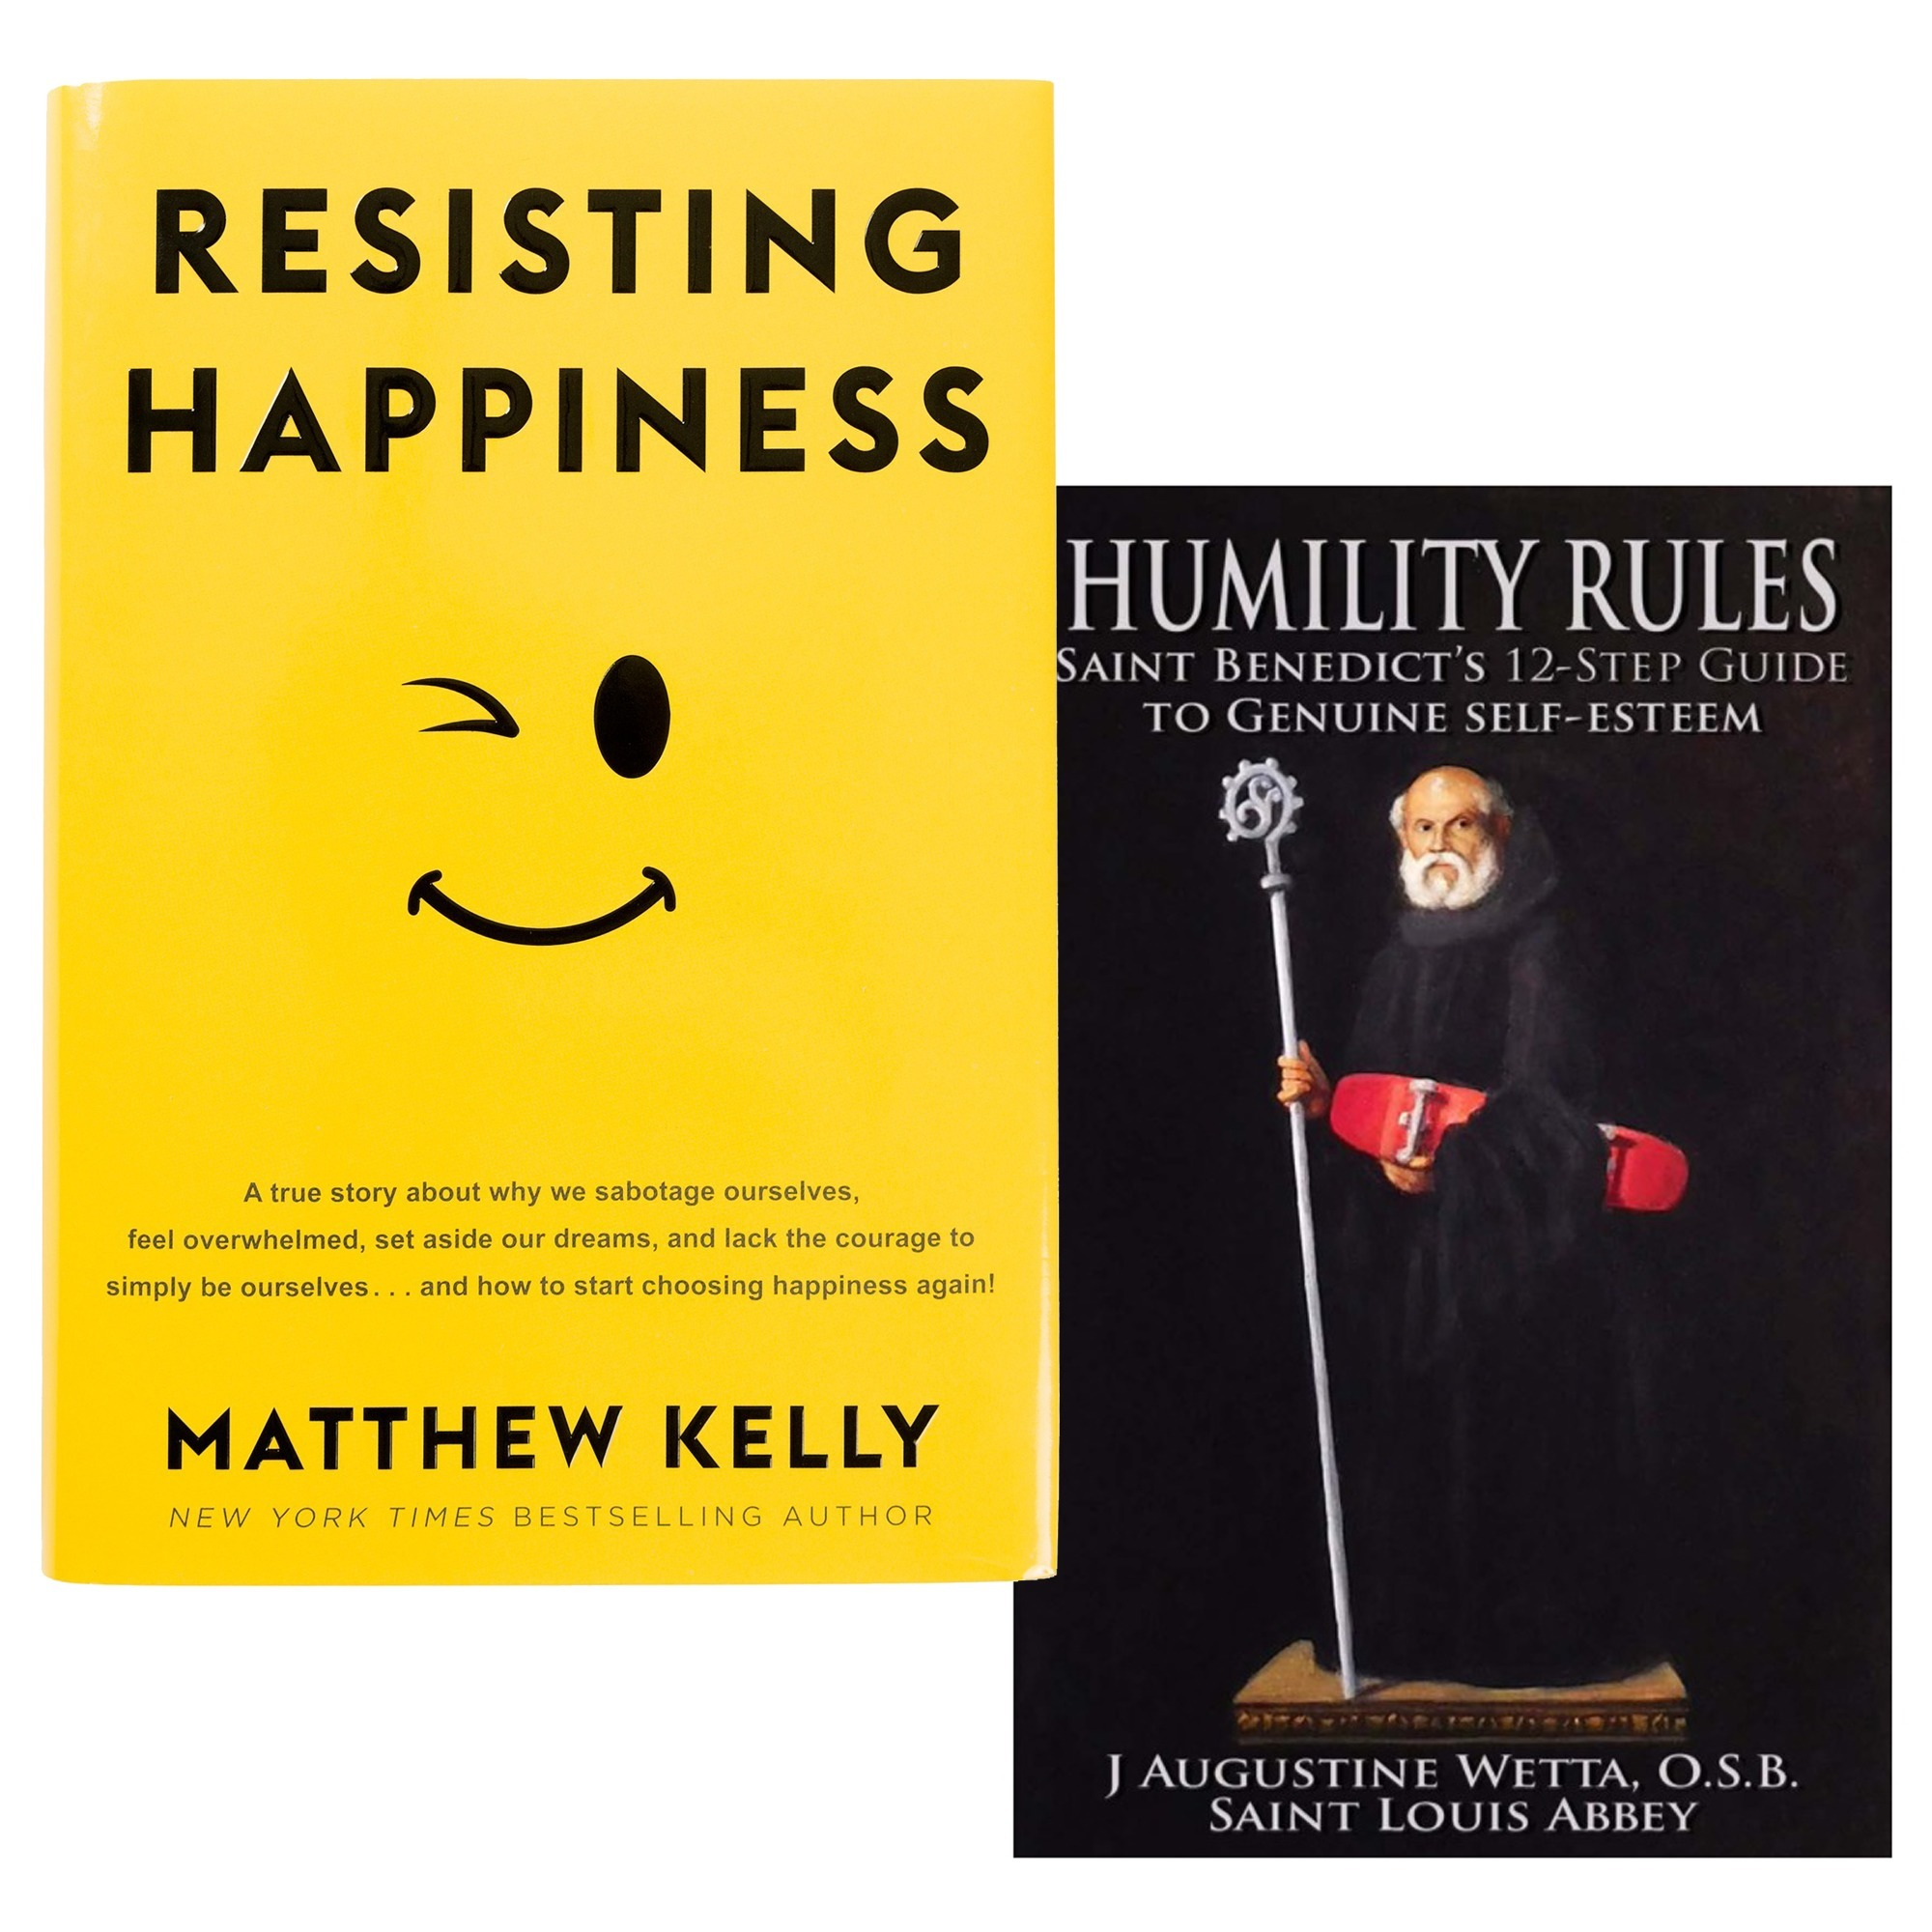 Resisting Happiness & Humility Rules (2 Book Set)   The Catholic Company